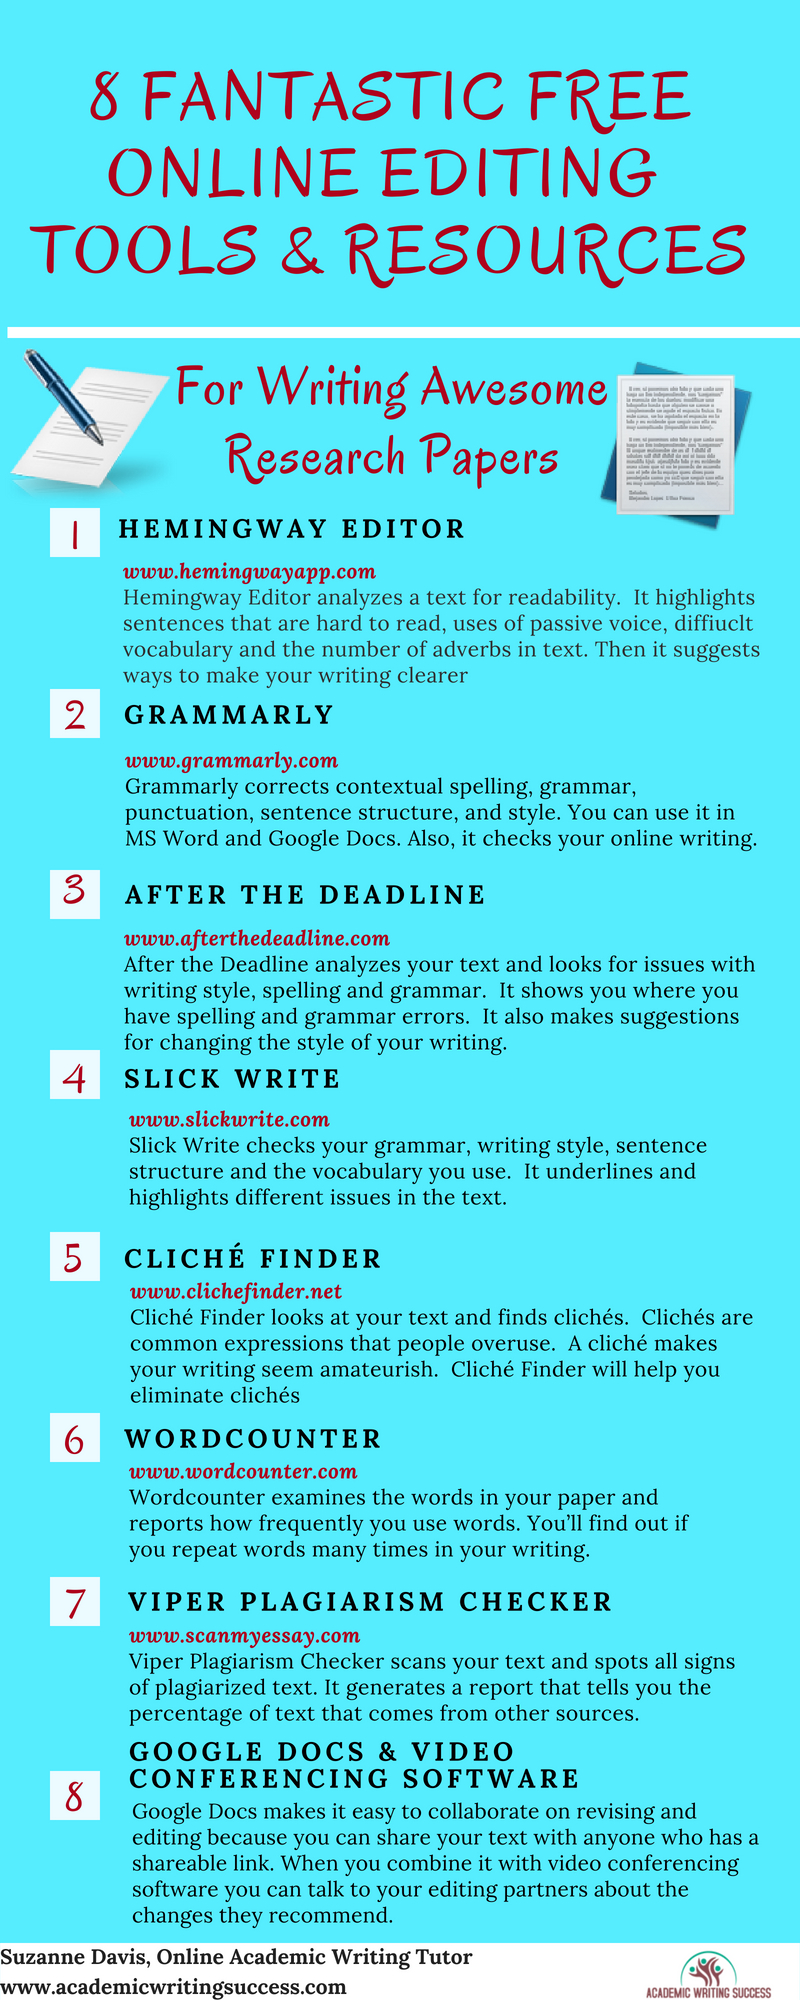 014 Research Paper Online Papers For Free Editing Fearsome Plagiarism Checker Students Library Full